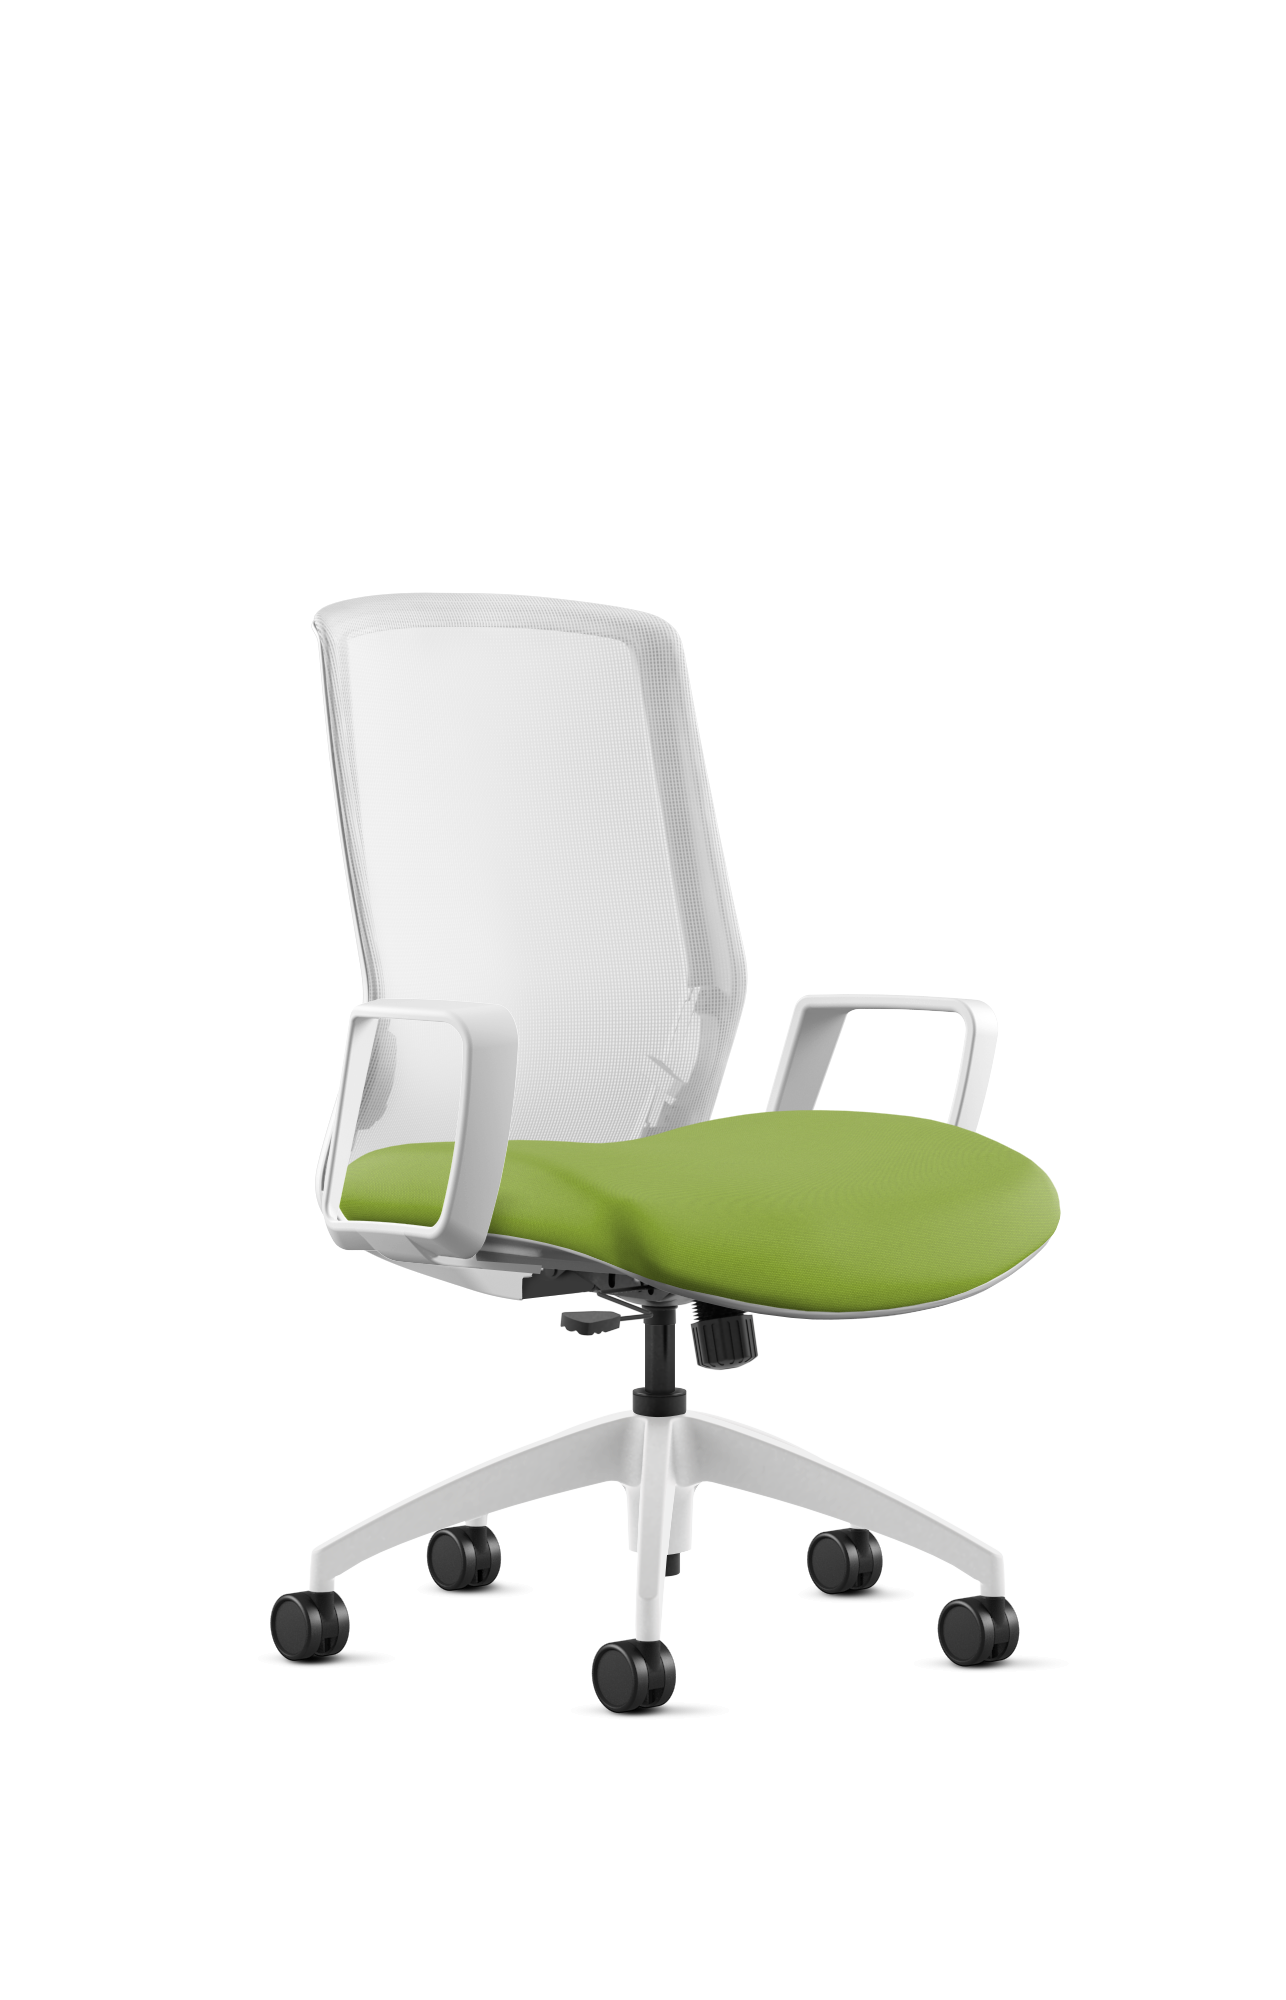 This colorful, lime green desk chair that can bring a chic touch